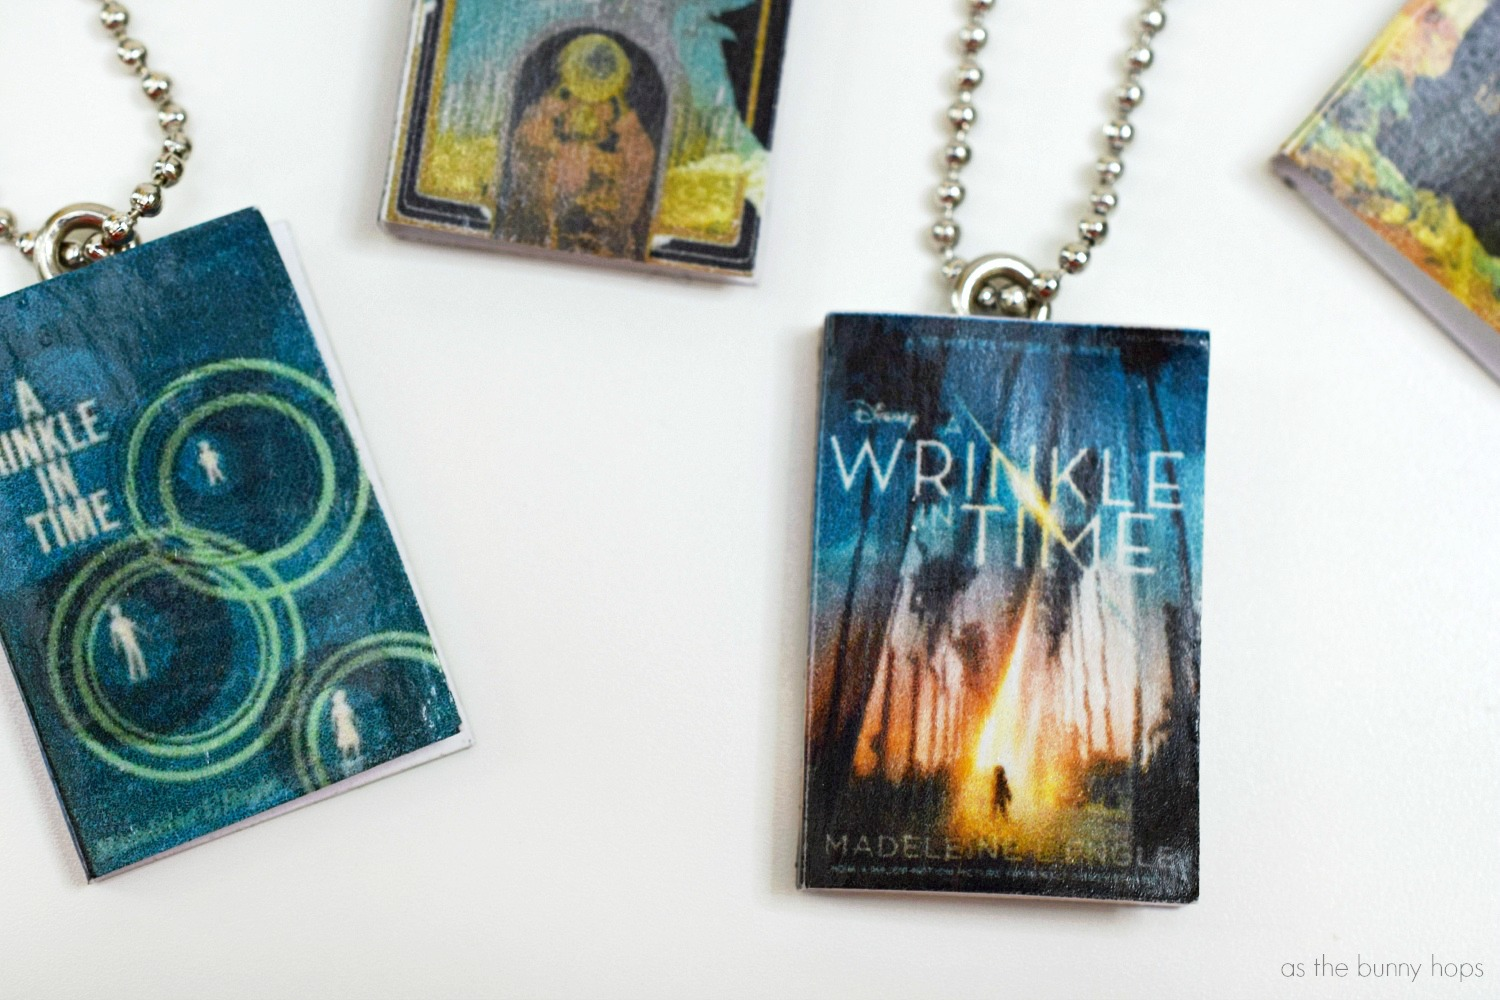 A Wrinkle In Time Book Charms As The Bunny Hops